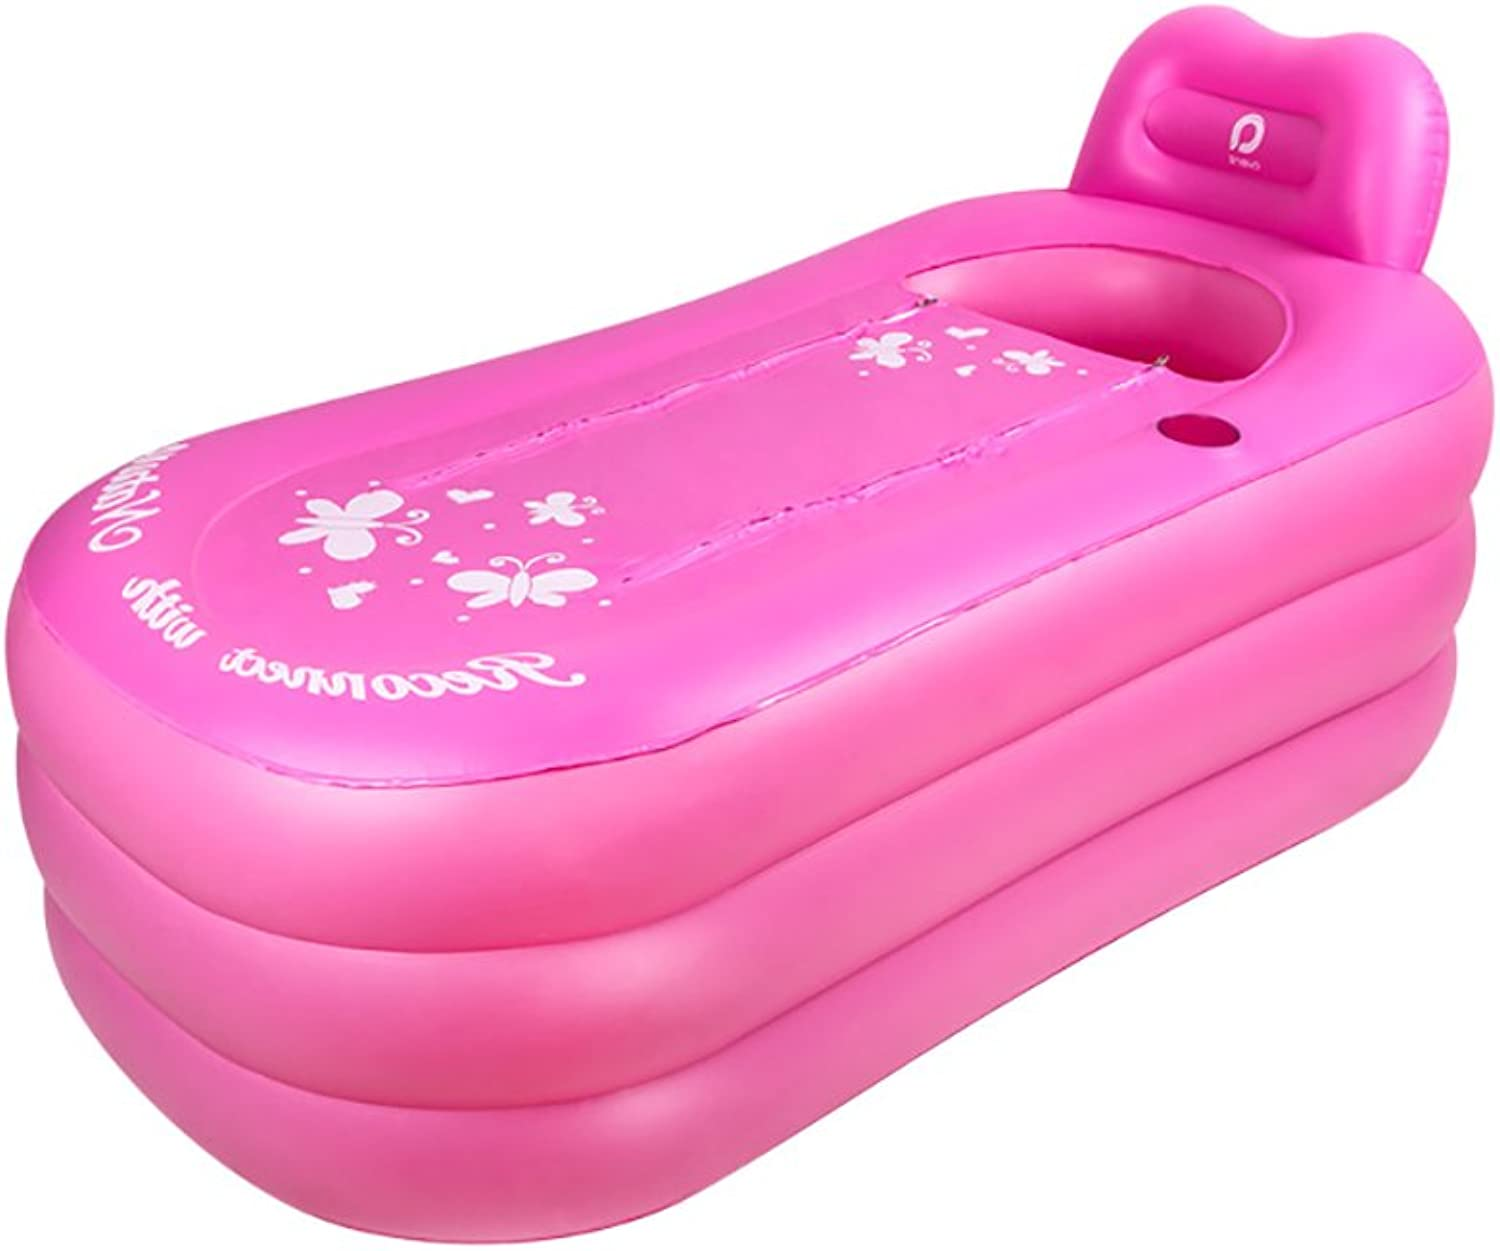 Peaceip Inflatable Adult Bath Pool Thickening Large Family Bath Insulation Swimming Pool (color   PINK, Size   130  80  70cm)